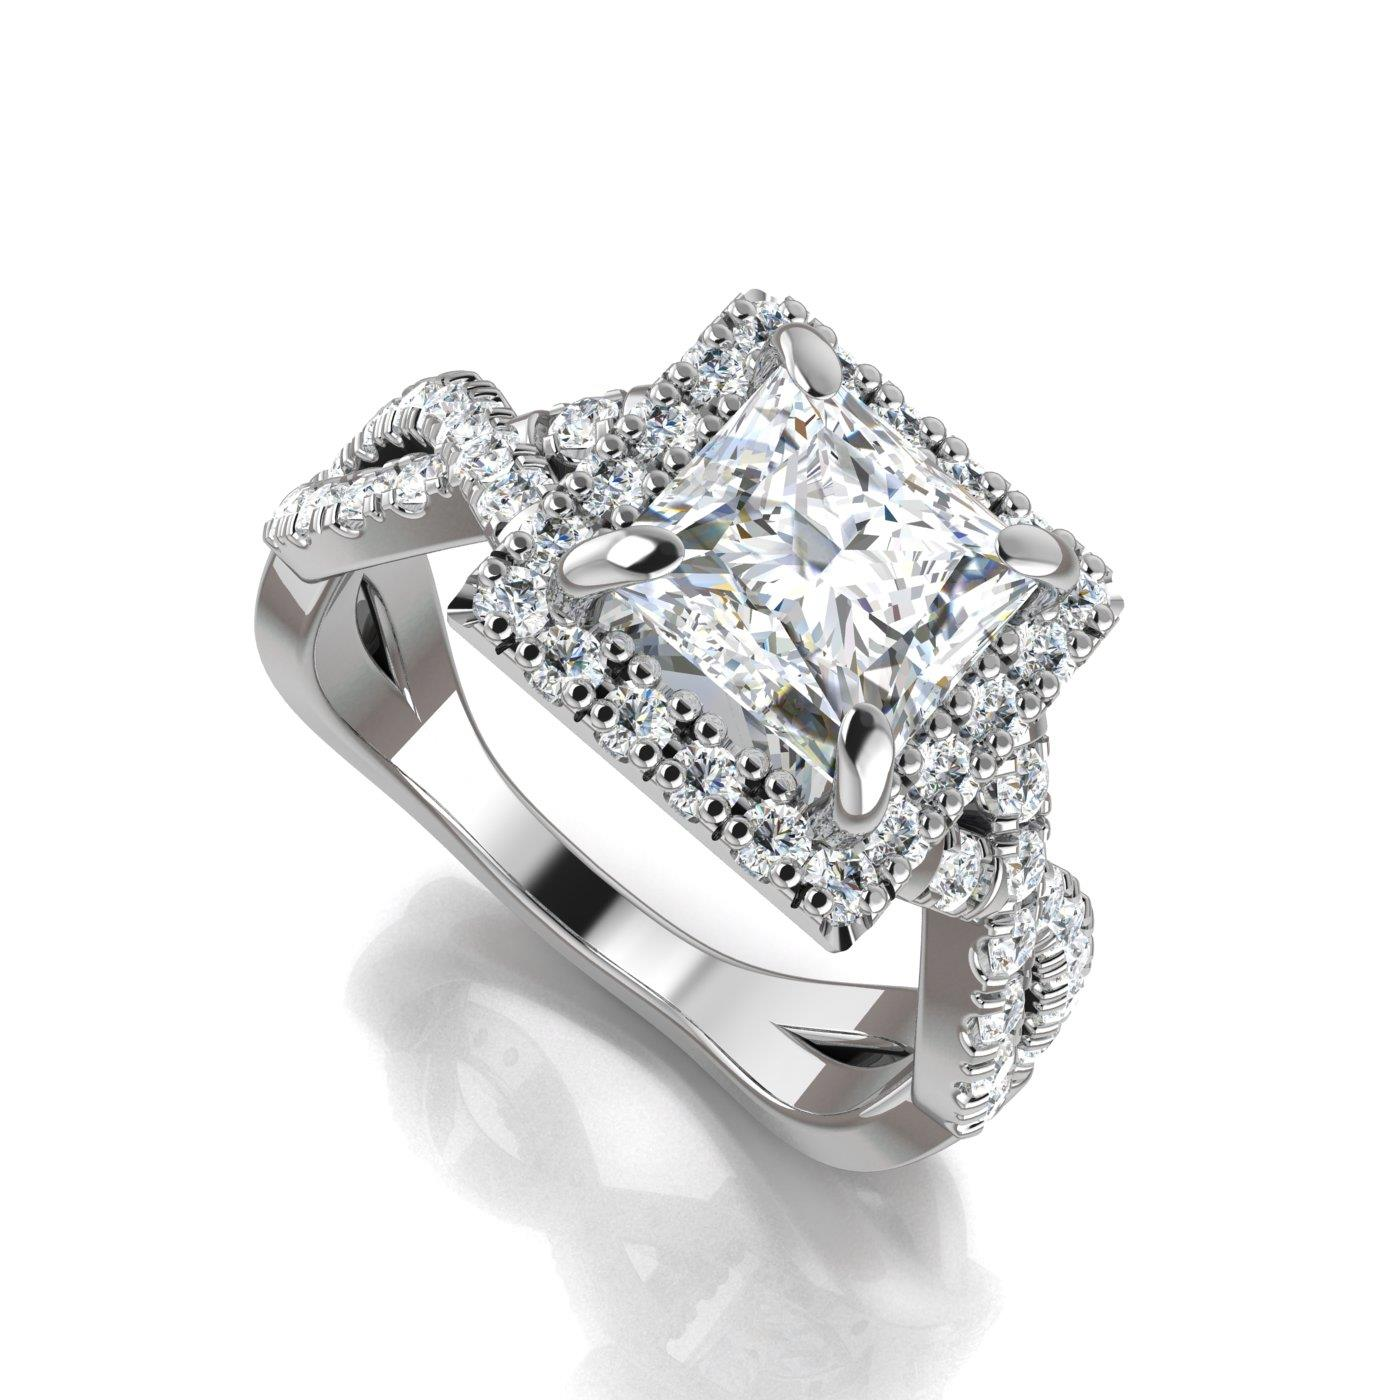 and go ri in rings halo ring fiorire quot square profile white princess cut engagement diamond jewellery uneek with pave shank